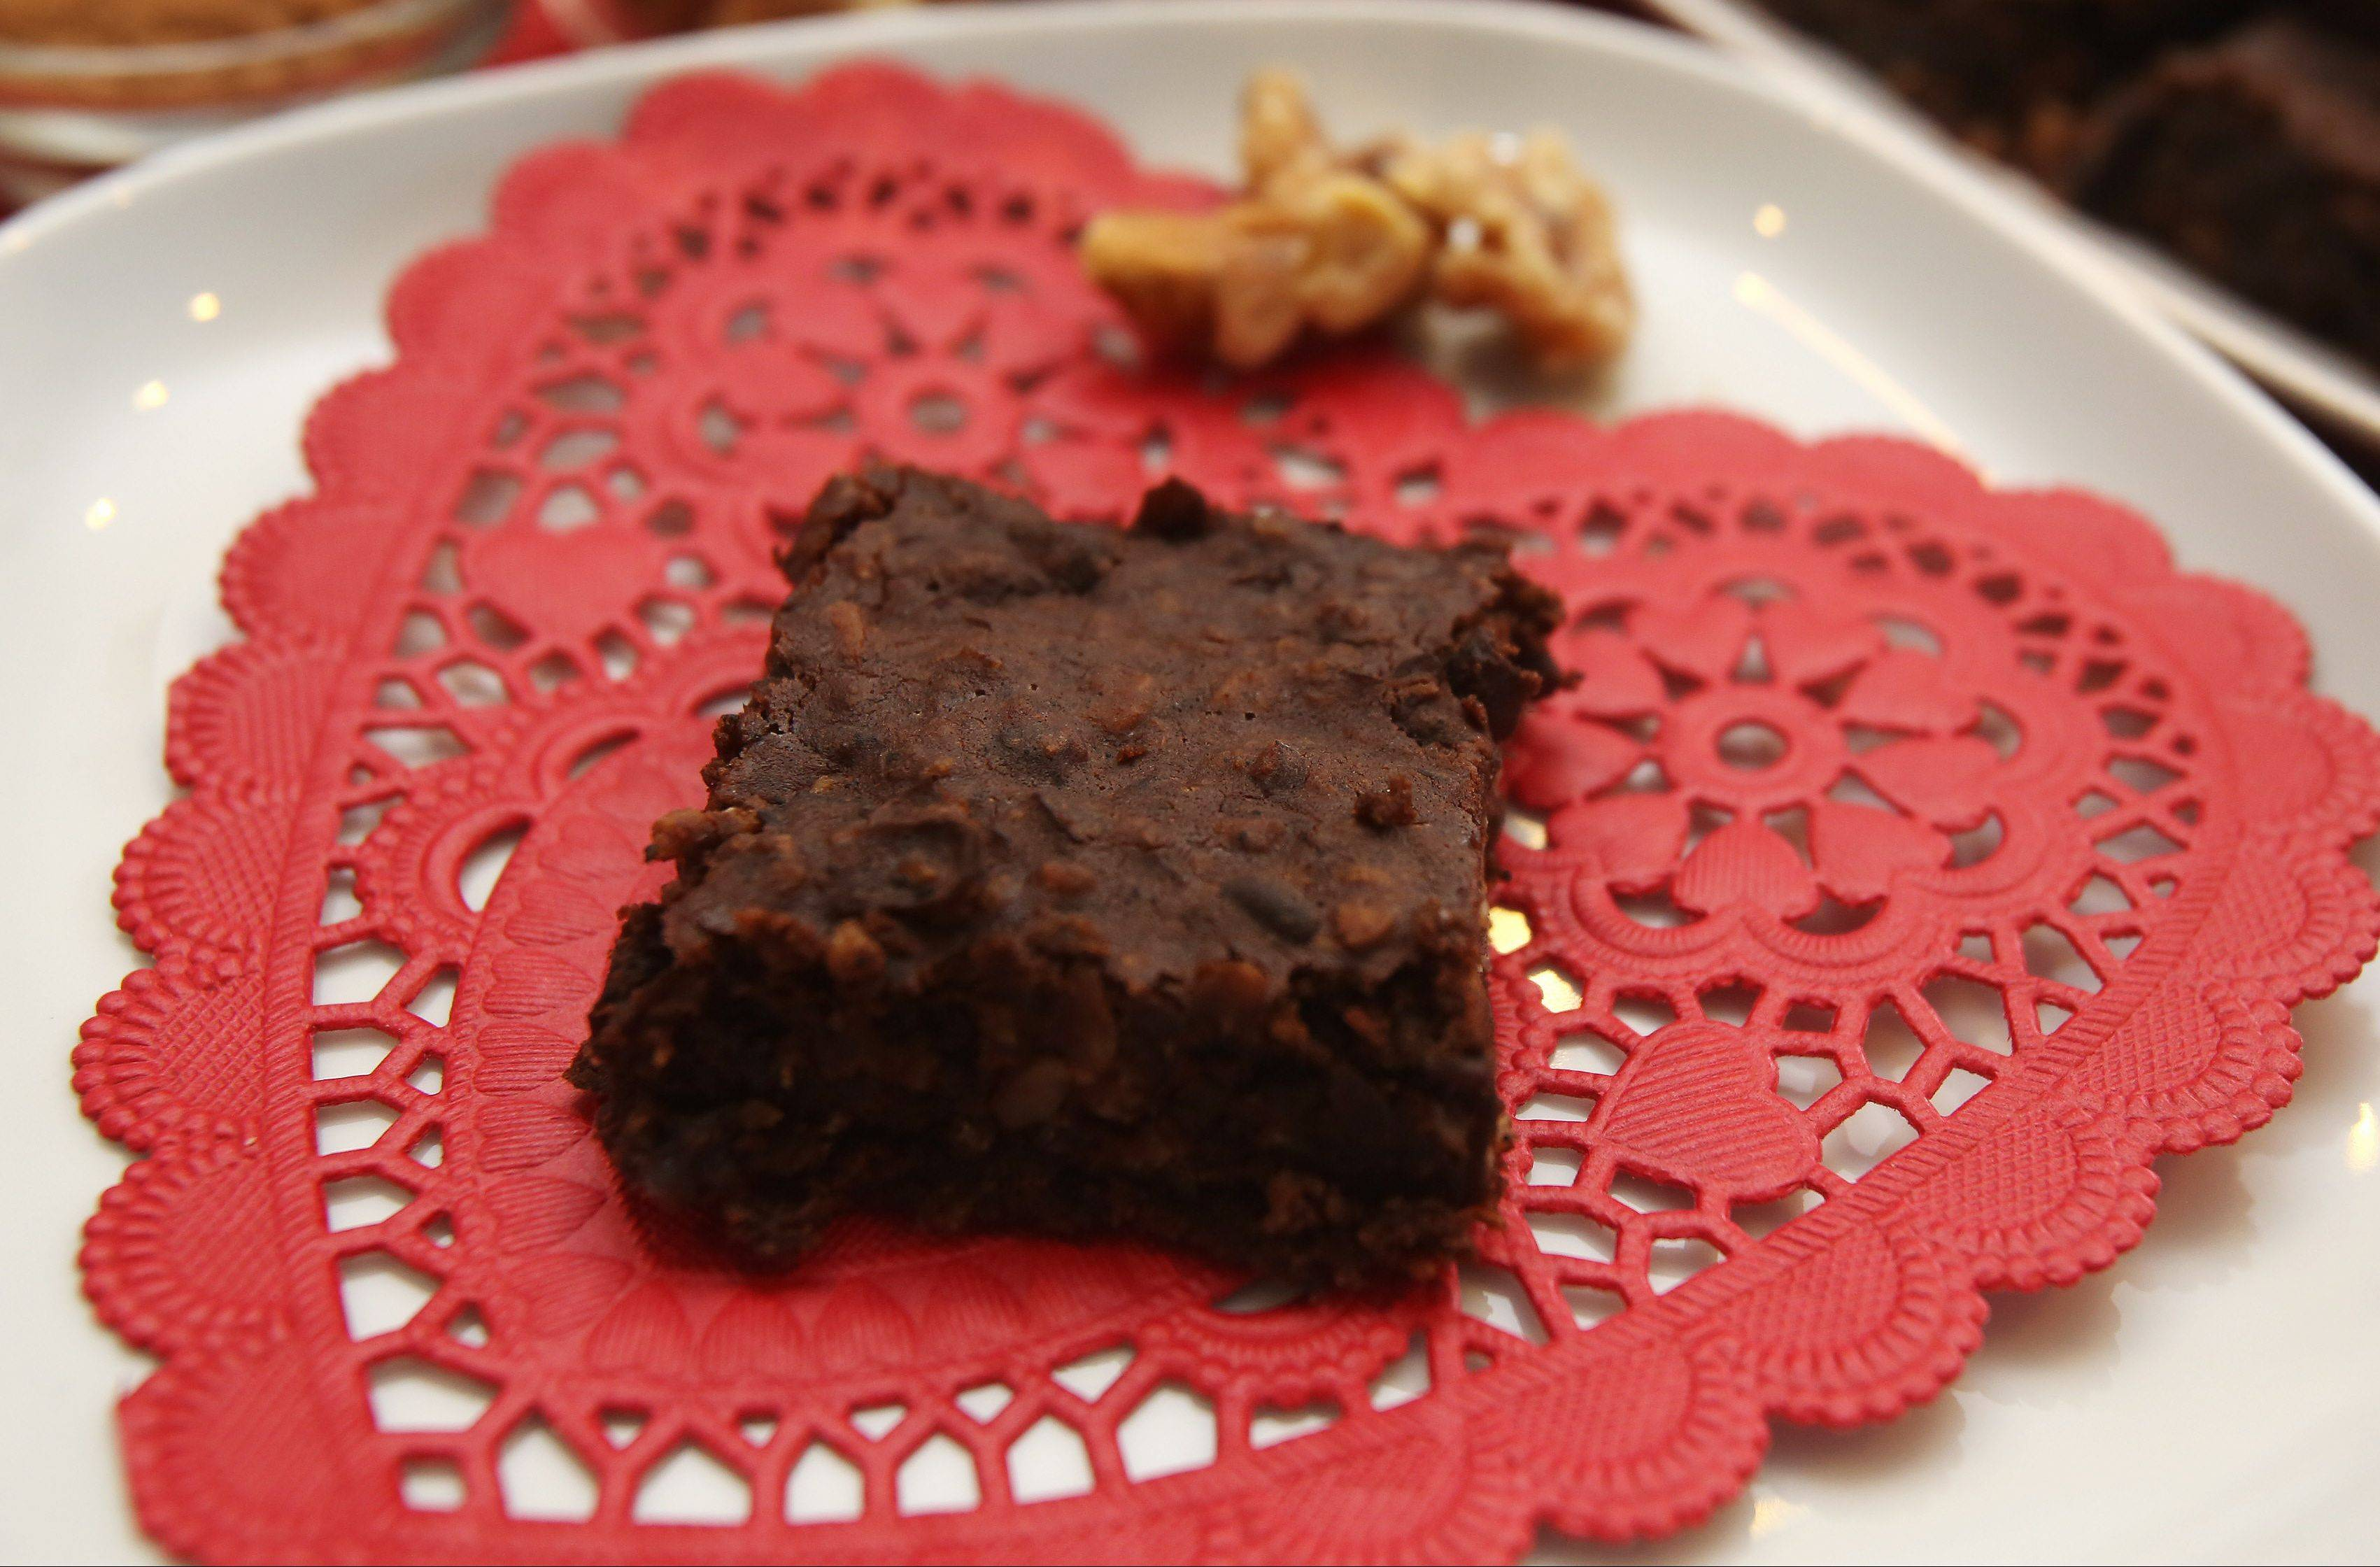 Dr. Janet's Flourless Dark Chocolate Brownies with Walnuts